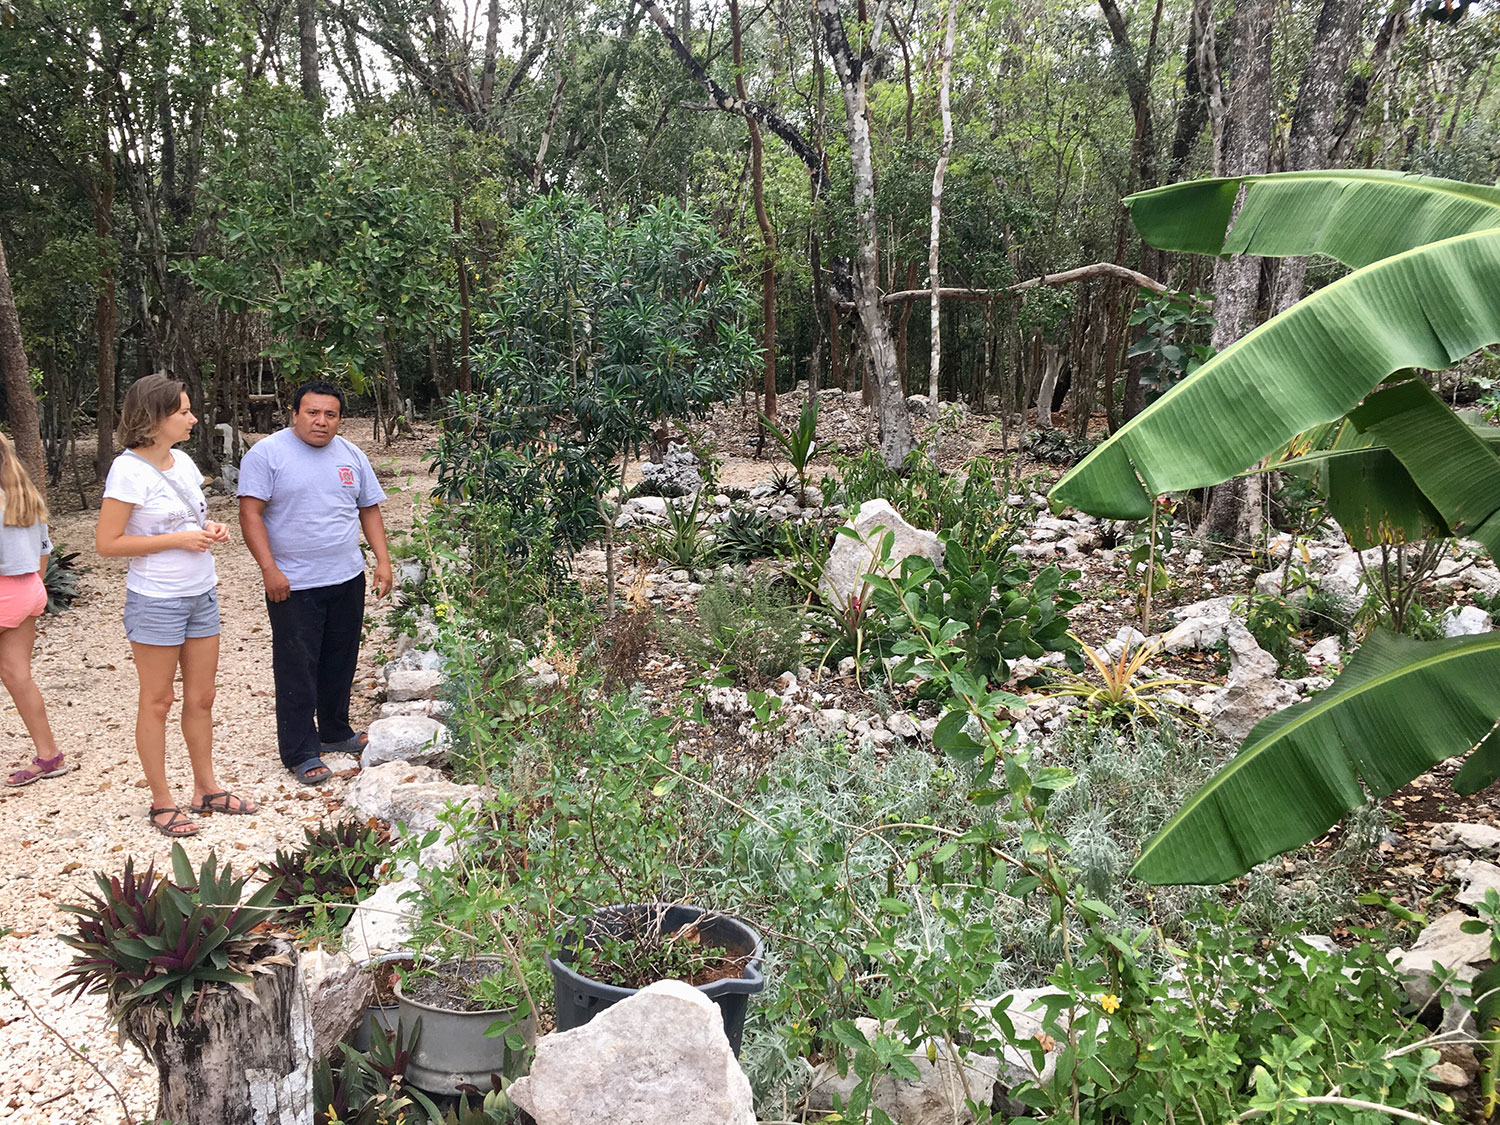 Ángel showing us their garden with medicinal plants.